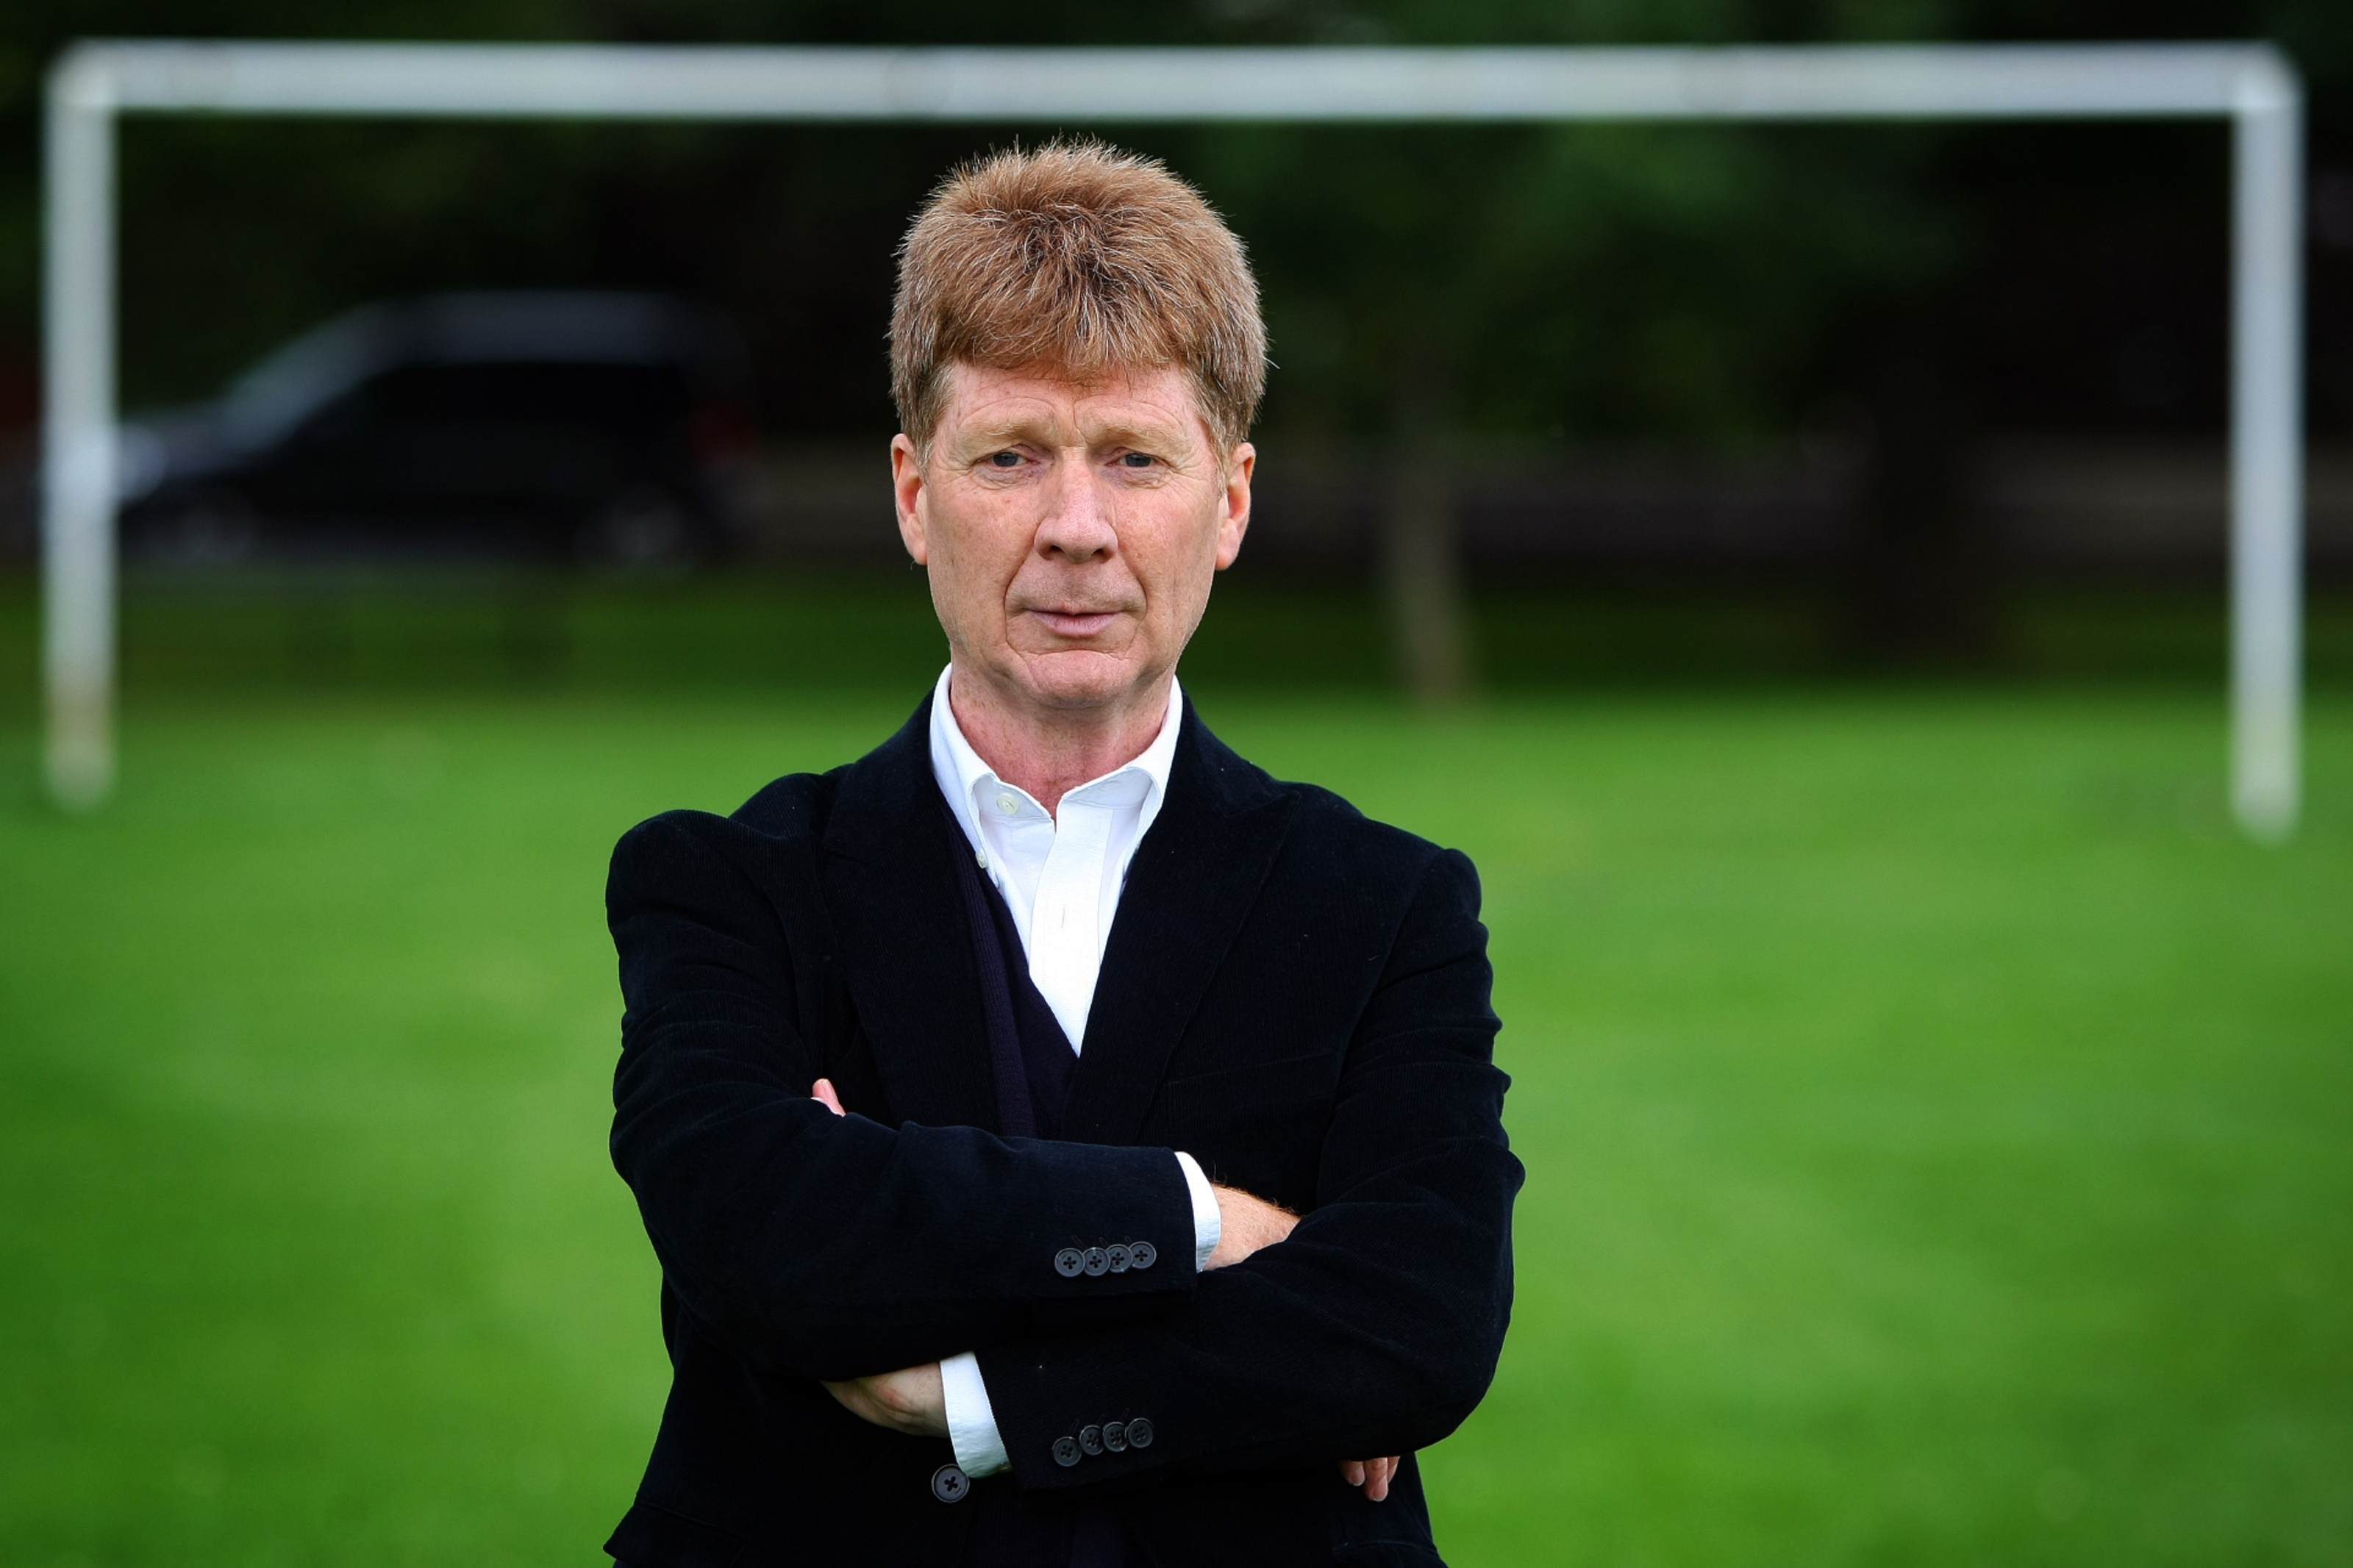 Jim Spence has only just arrived at United - but has had a tough first week.